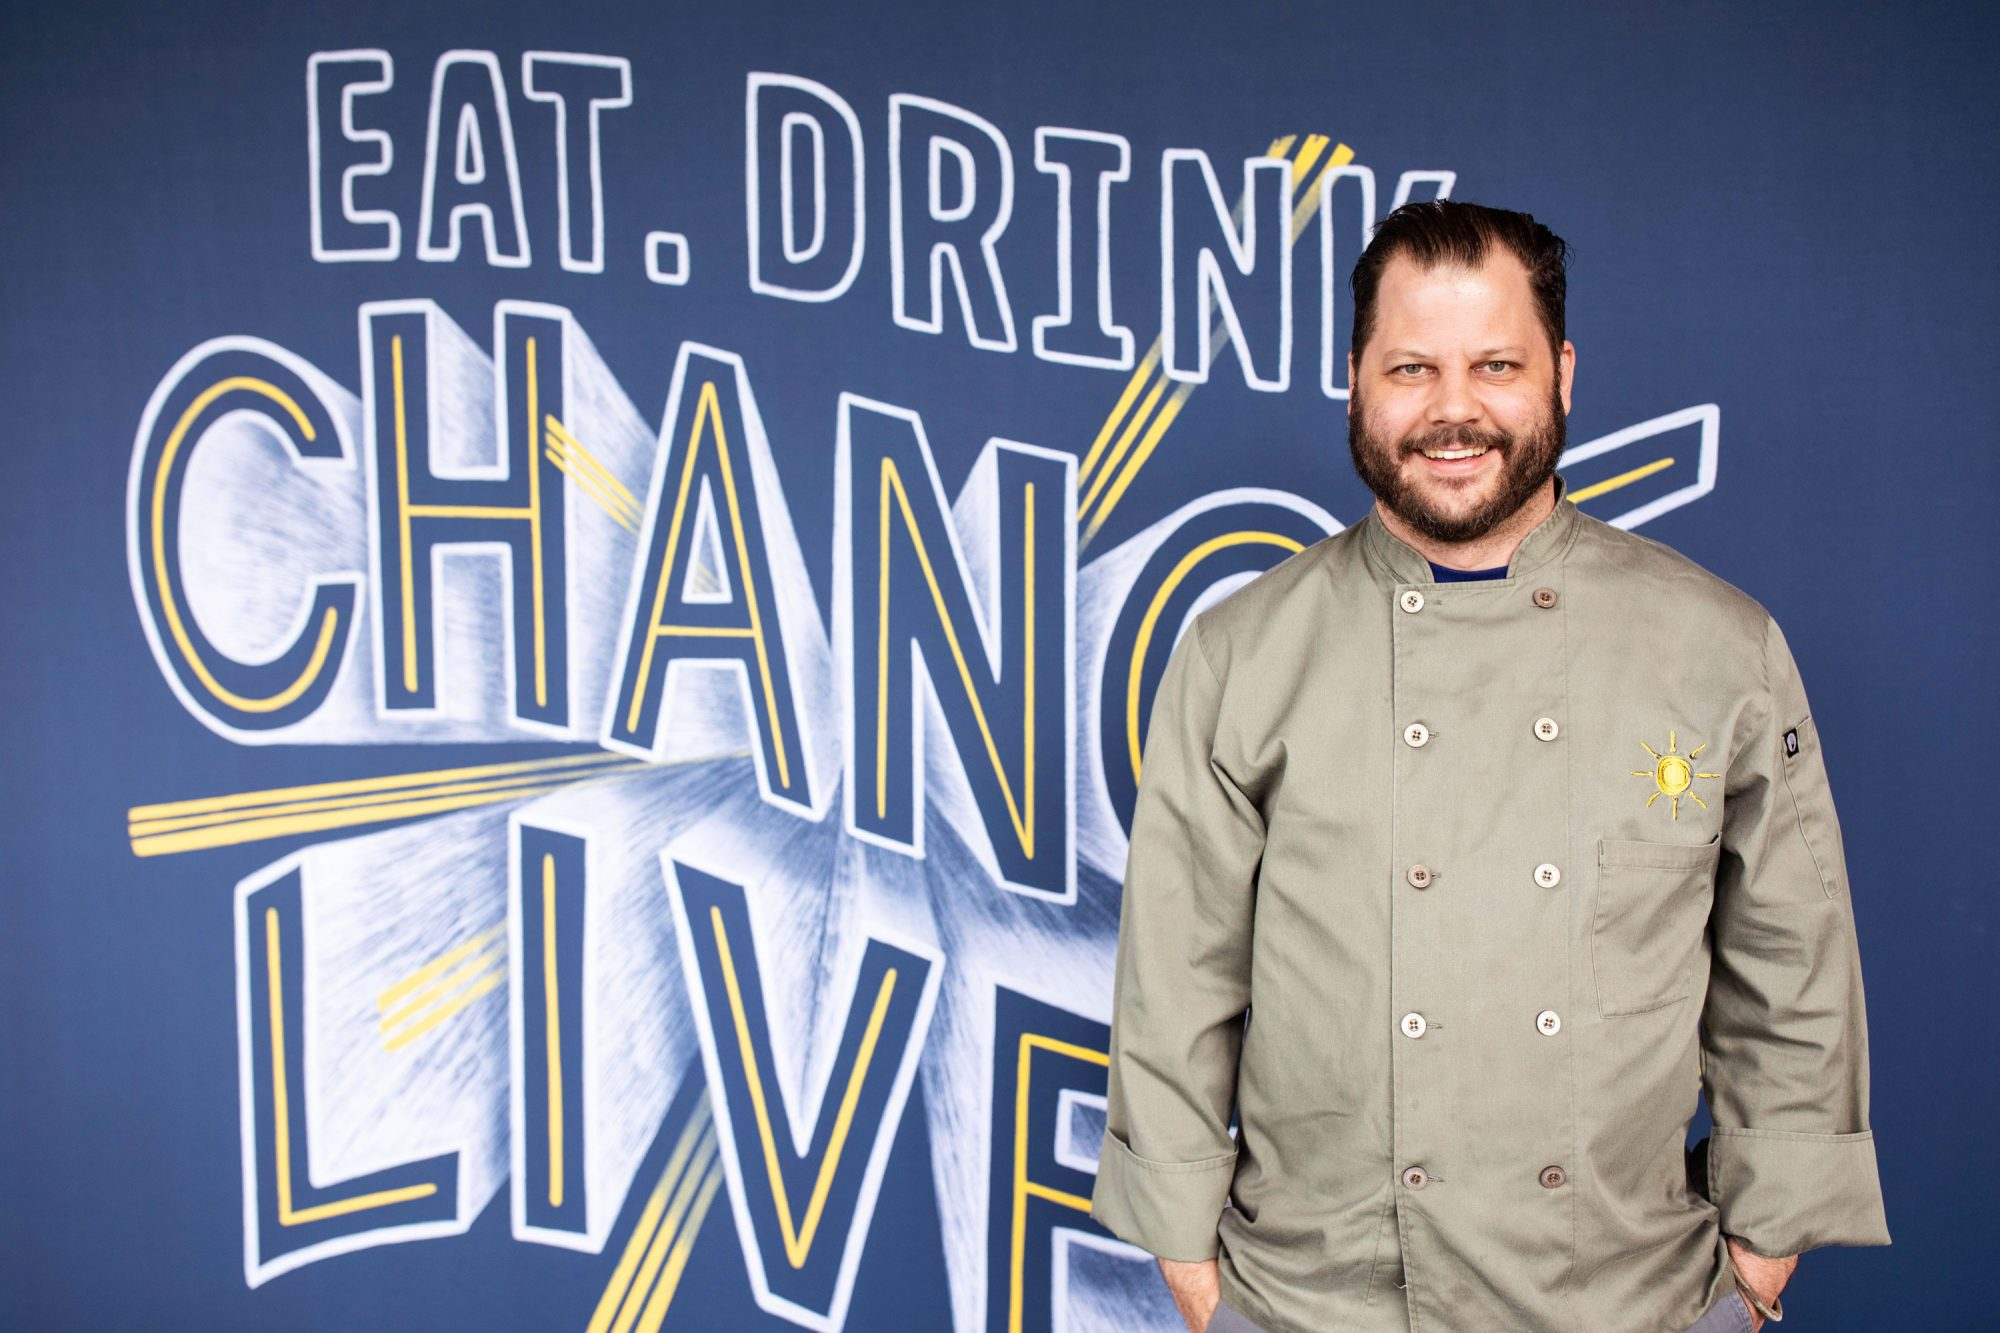 Chad Houser of Momentum Cafe